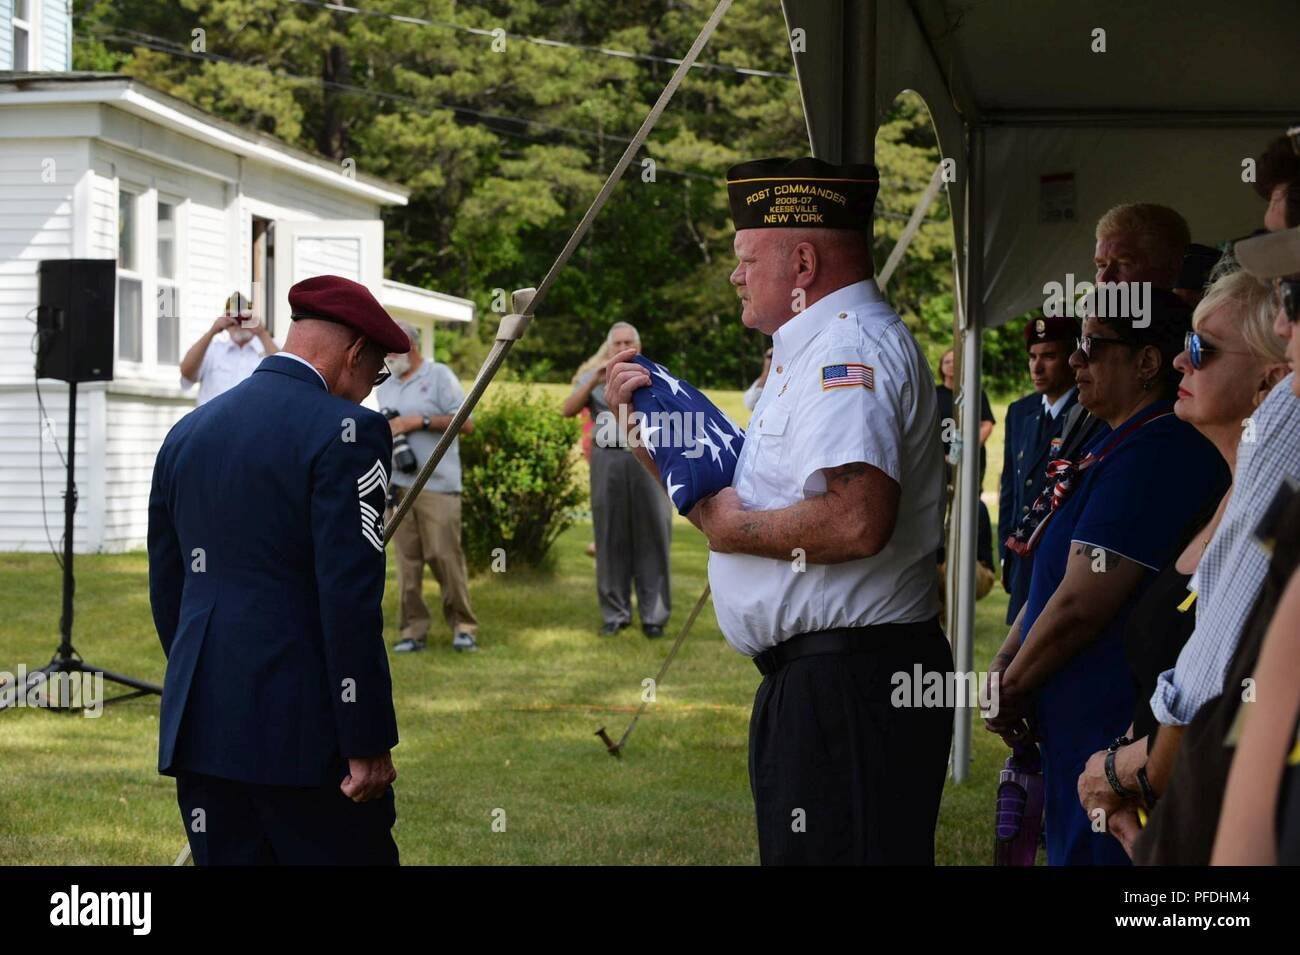 Retired New York Air National Guard 106th Rescue Wing Chief Master Sgt. Mike McManus, pararescueman NCOIC, gives the folded American Flag to the VFW 1505 Commander Mr. Mike Billinger, Keeseville, N.Y., June 13, 2018. On June 13, 1978, an HH-3E Jolly Green Giant Helicopter from the 102nd Aerospace Rescue and Recovery Group now the 106th Rescue Wing in Westhampton Beach N.Y., was returning to base after training at Plattsburgh Air Force Base, N.Y. After encountering inclement weather, the seven members turned back to Plattsburgh, but with low visibility, the HH-3E hit the Trembleau Mountain just - Stock Image